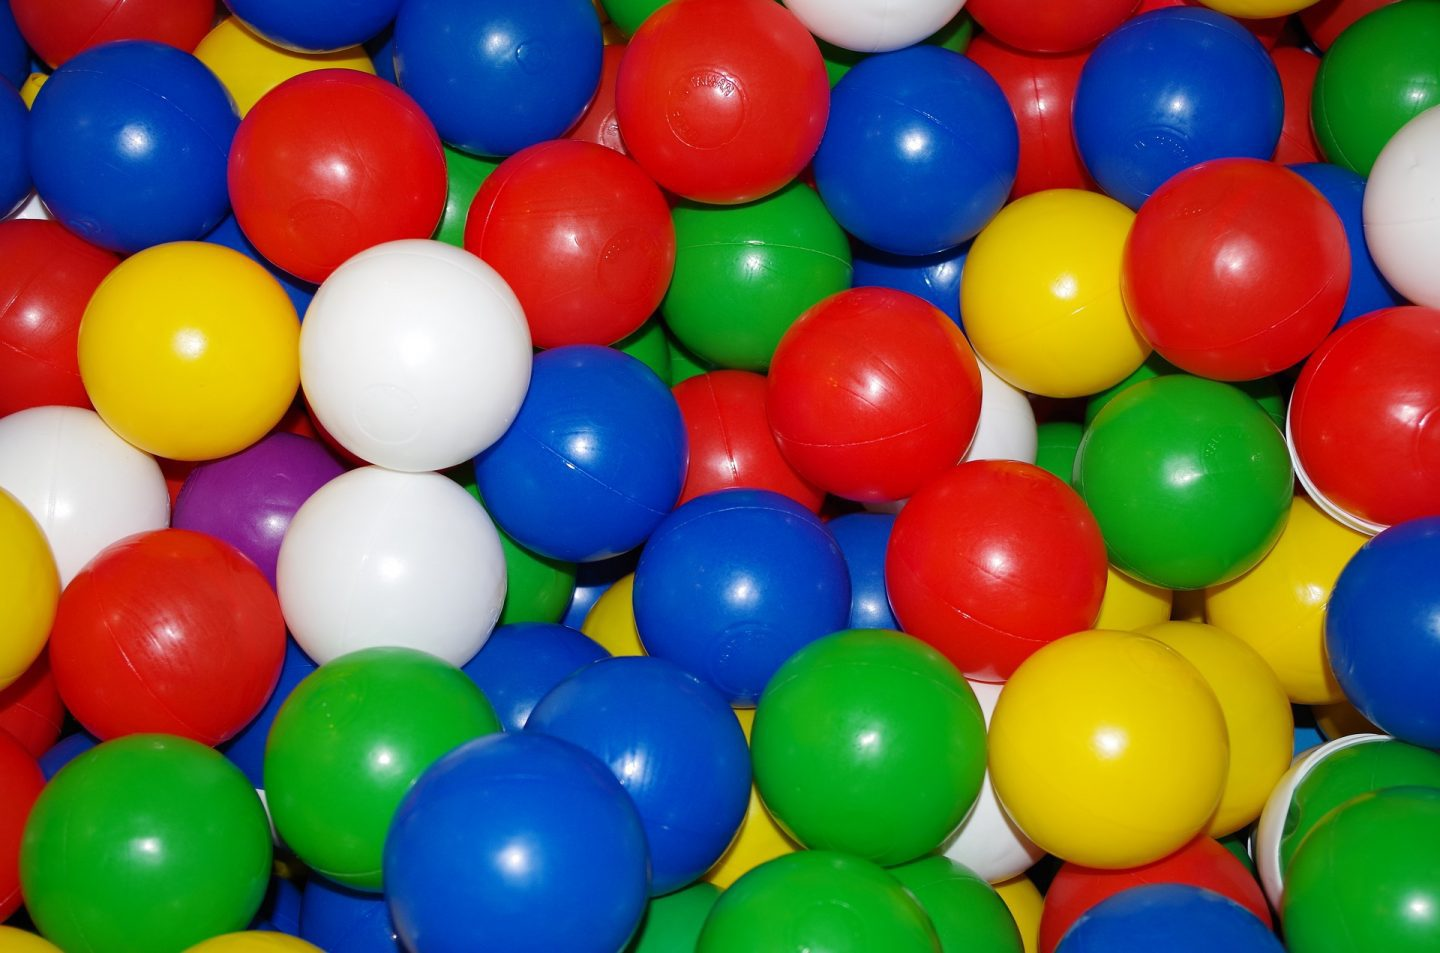 Brightly coloured plastic balls